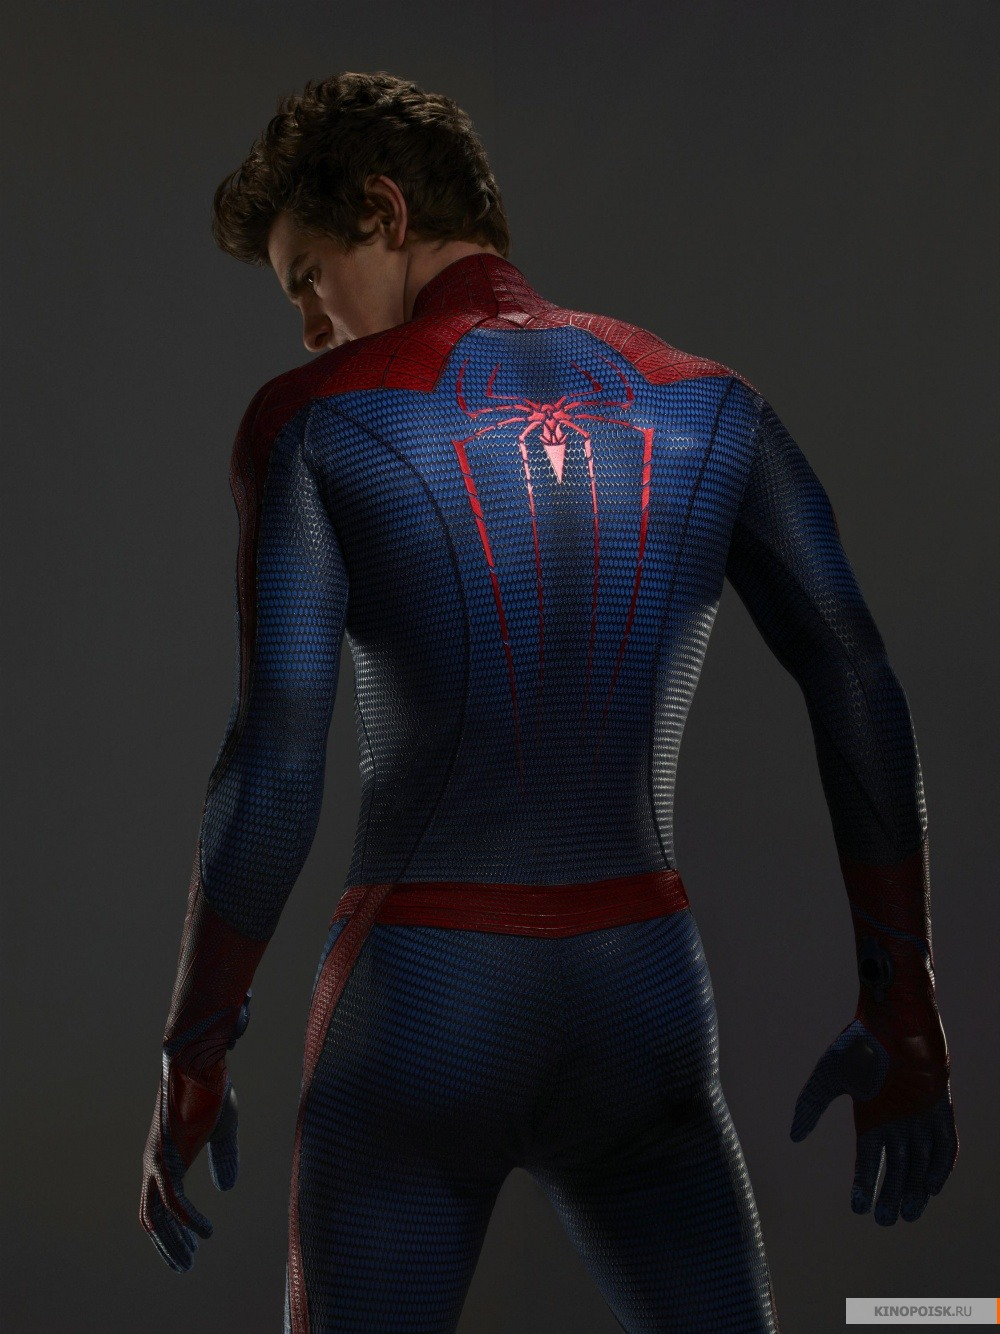 kinopoisk.ru Amazing Spider Man 2C The 1664171 Новый Человек   паук